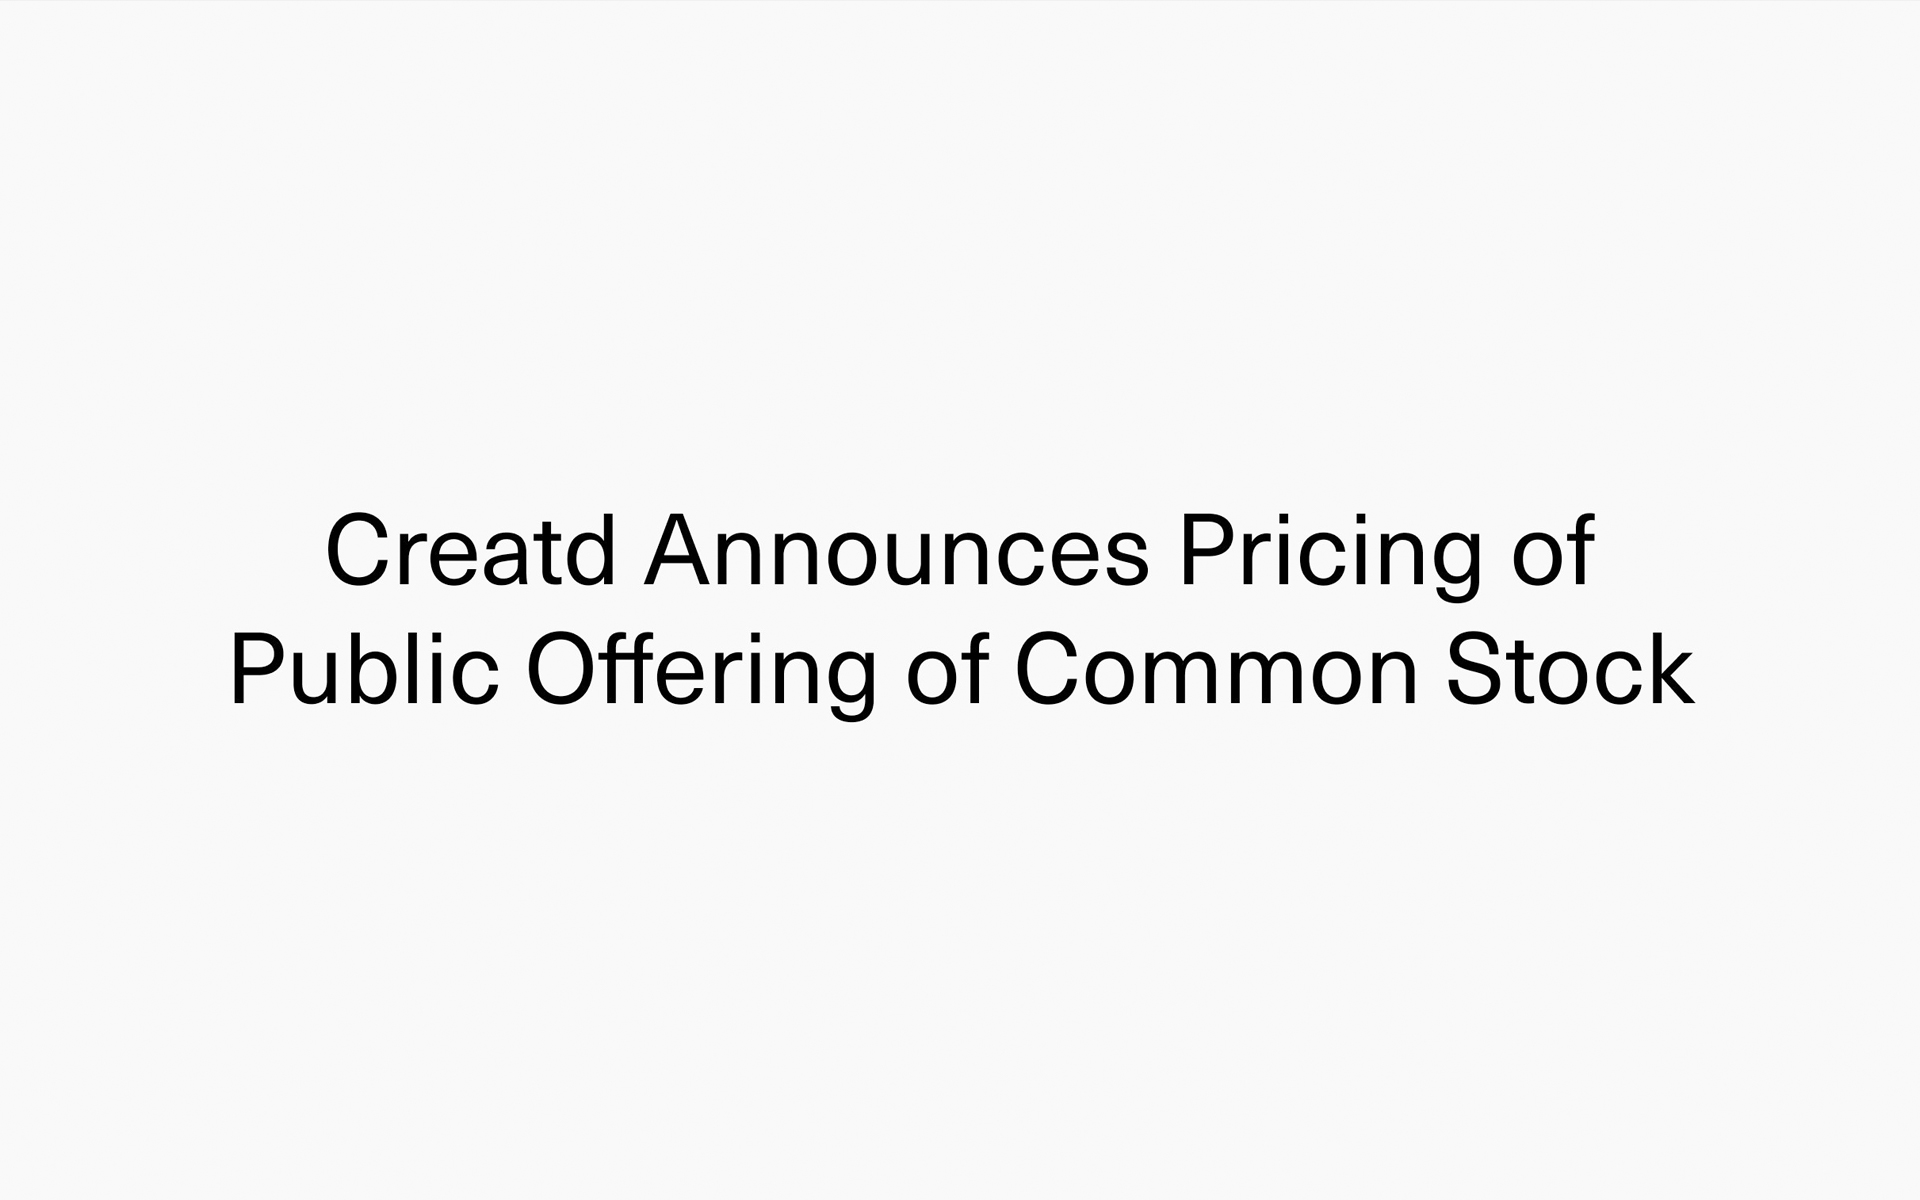 Creatd Announces Pricing of Public Offering of Common Stock